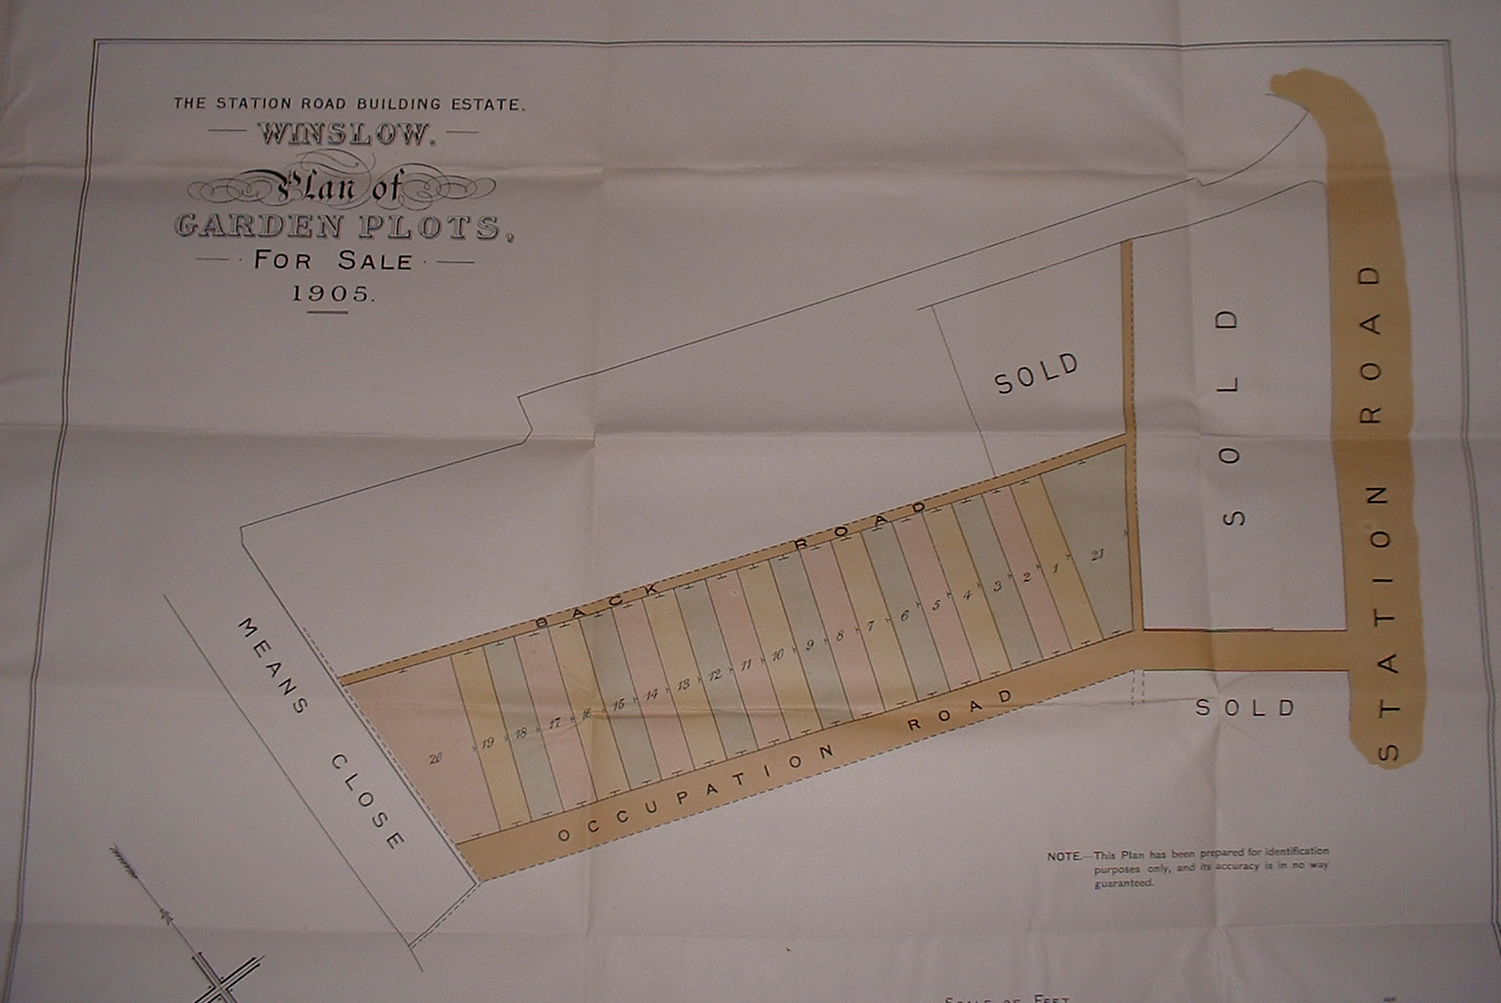 Plan from the 1906 sale